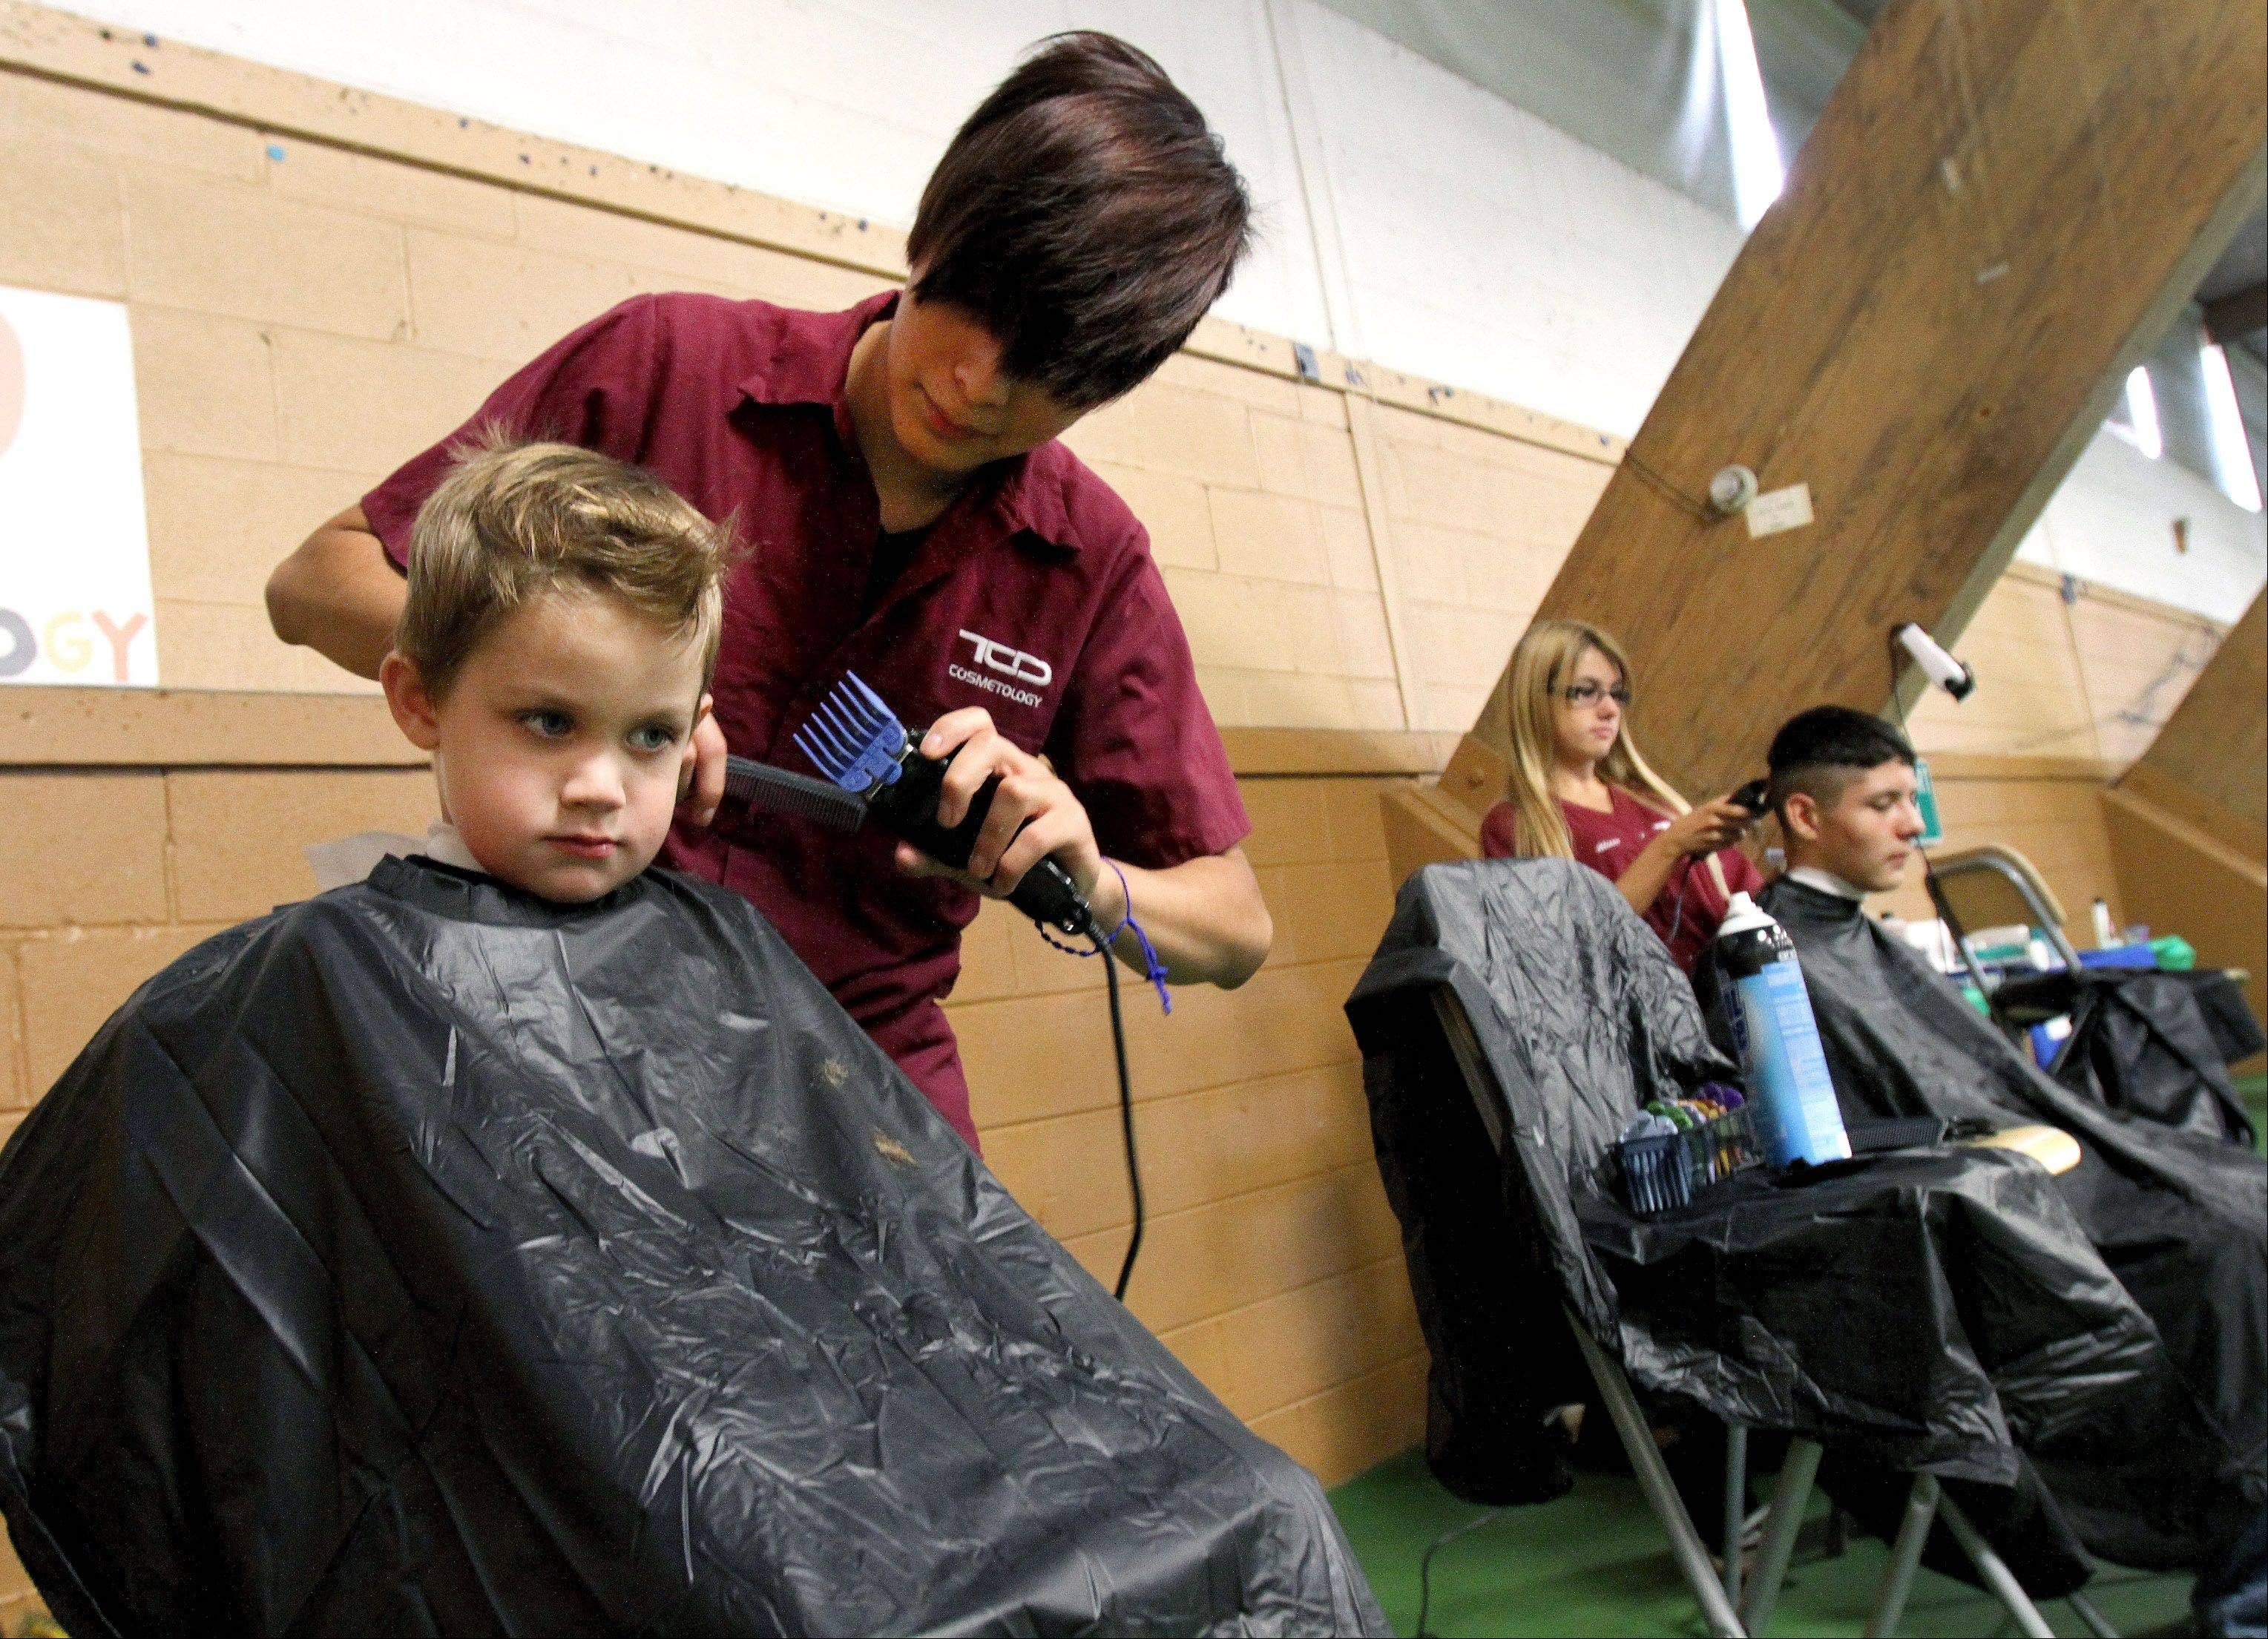 Rogan Packman, 5, of Lombard and Artubio Rubio, 13, of West Chicago get free hair cuts from cosmetology students Alejandro Vasquez and Alison Bednara of the Technology Center of DuPage.